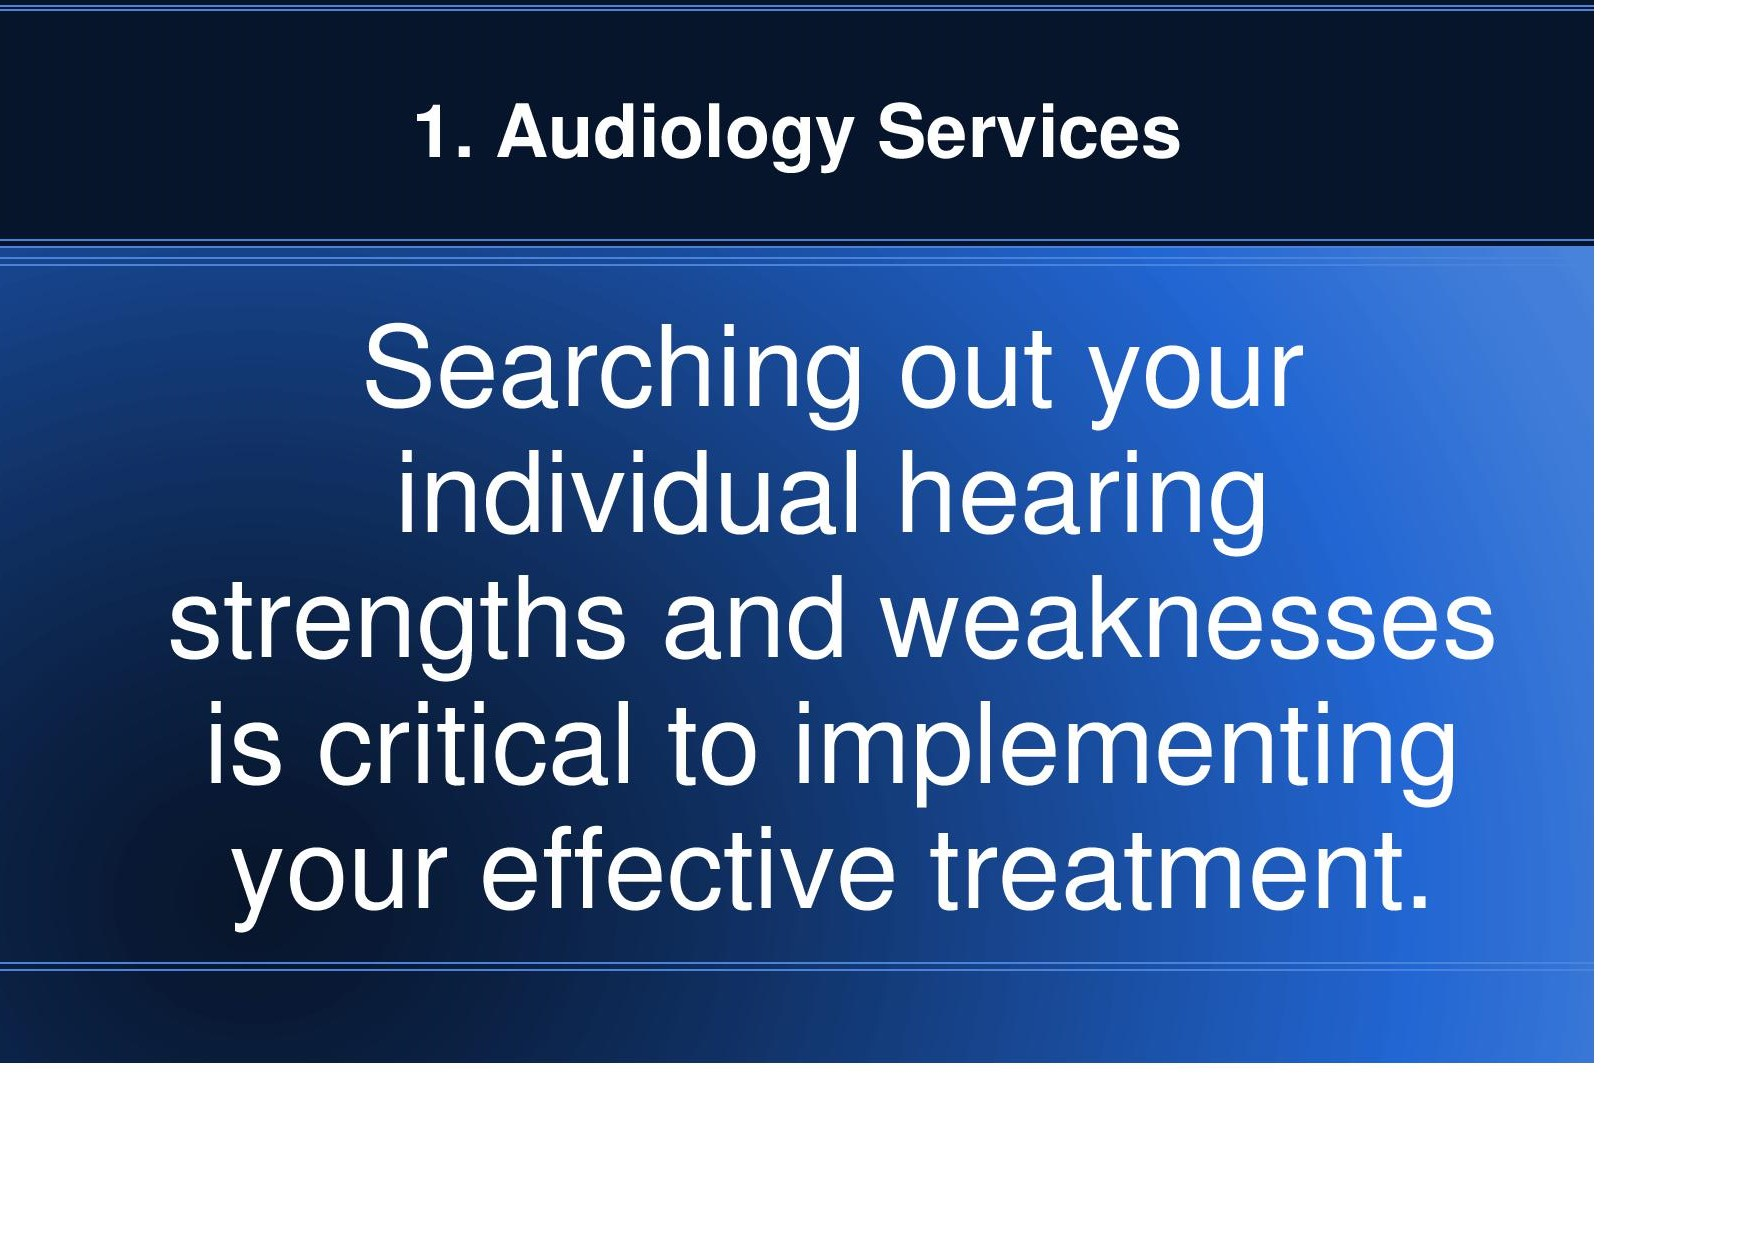 Web 3 ways to combat hearing loss02.jpg